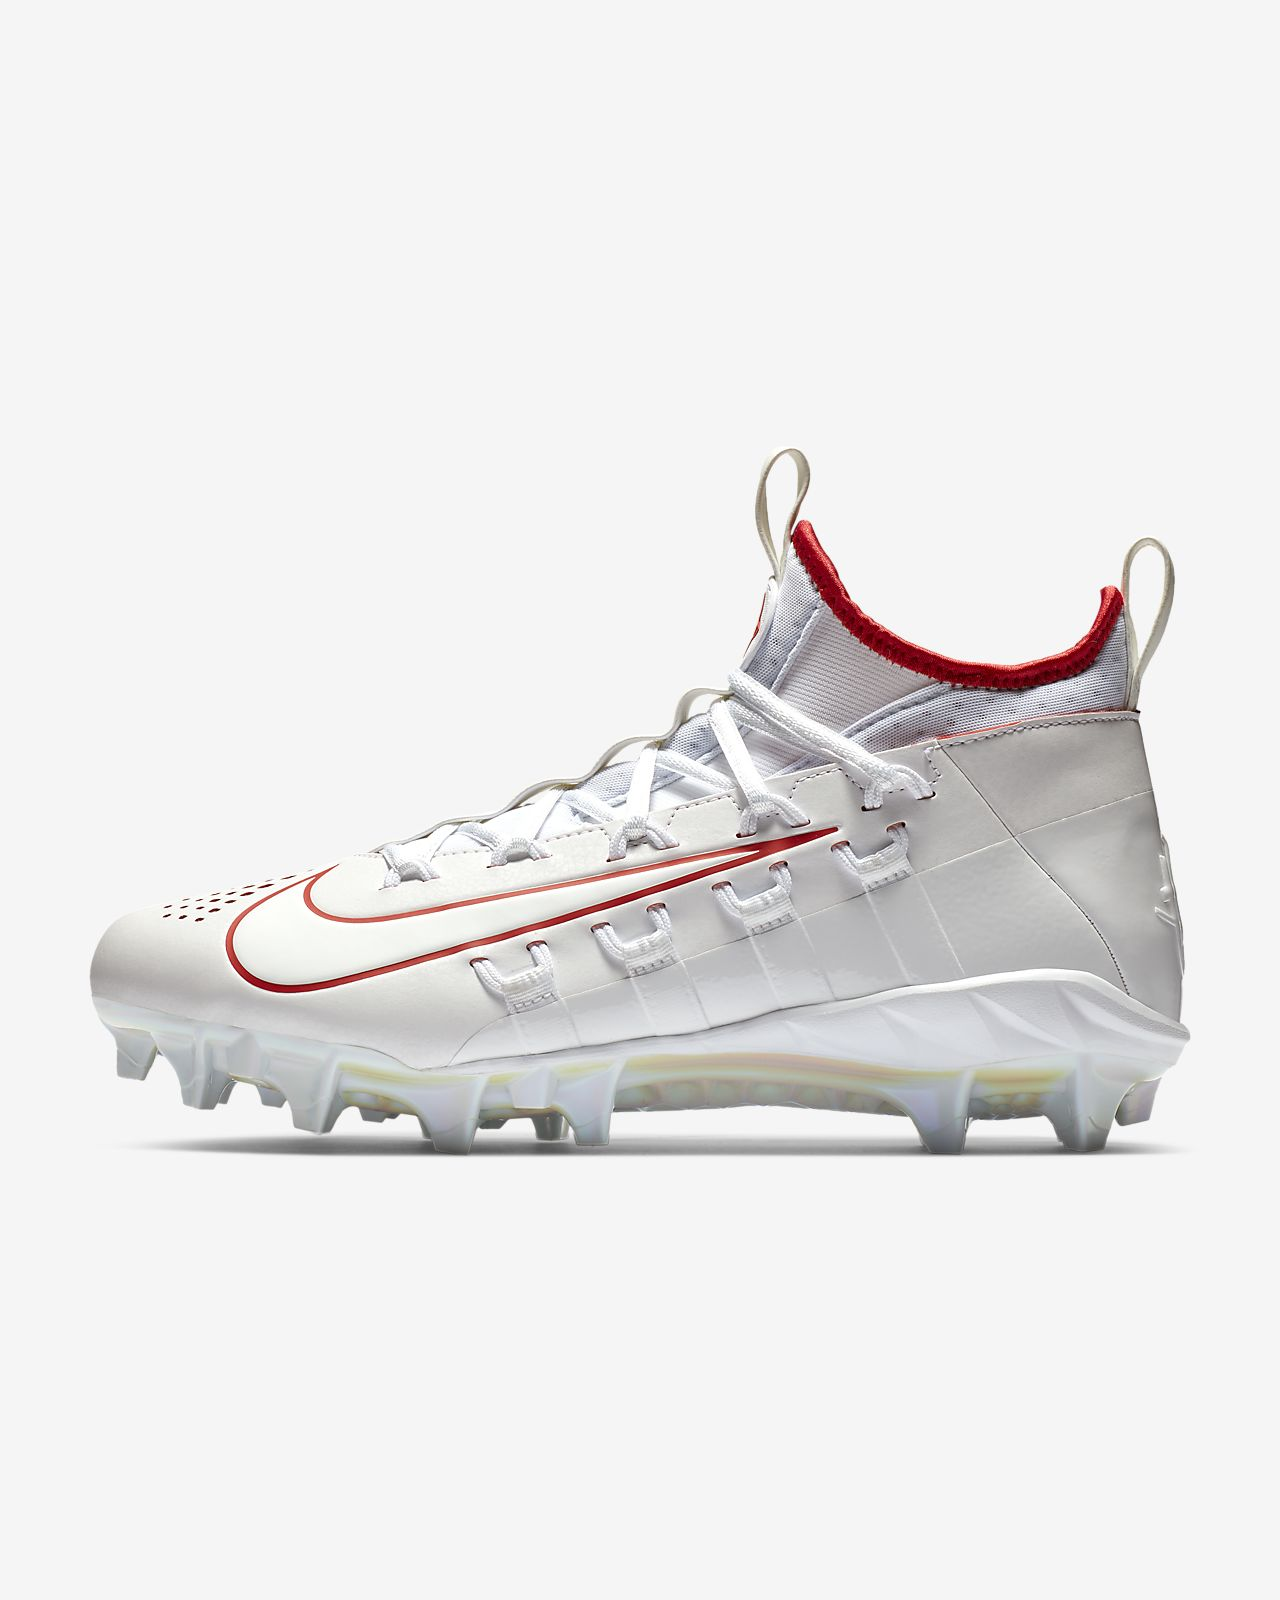 new styles 3f3ee a3f77 ... Nike Alpha Huarache 6 Elite LAX Premium Lacrosse Cleat